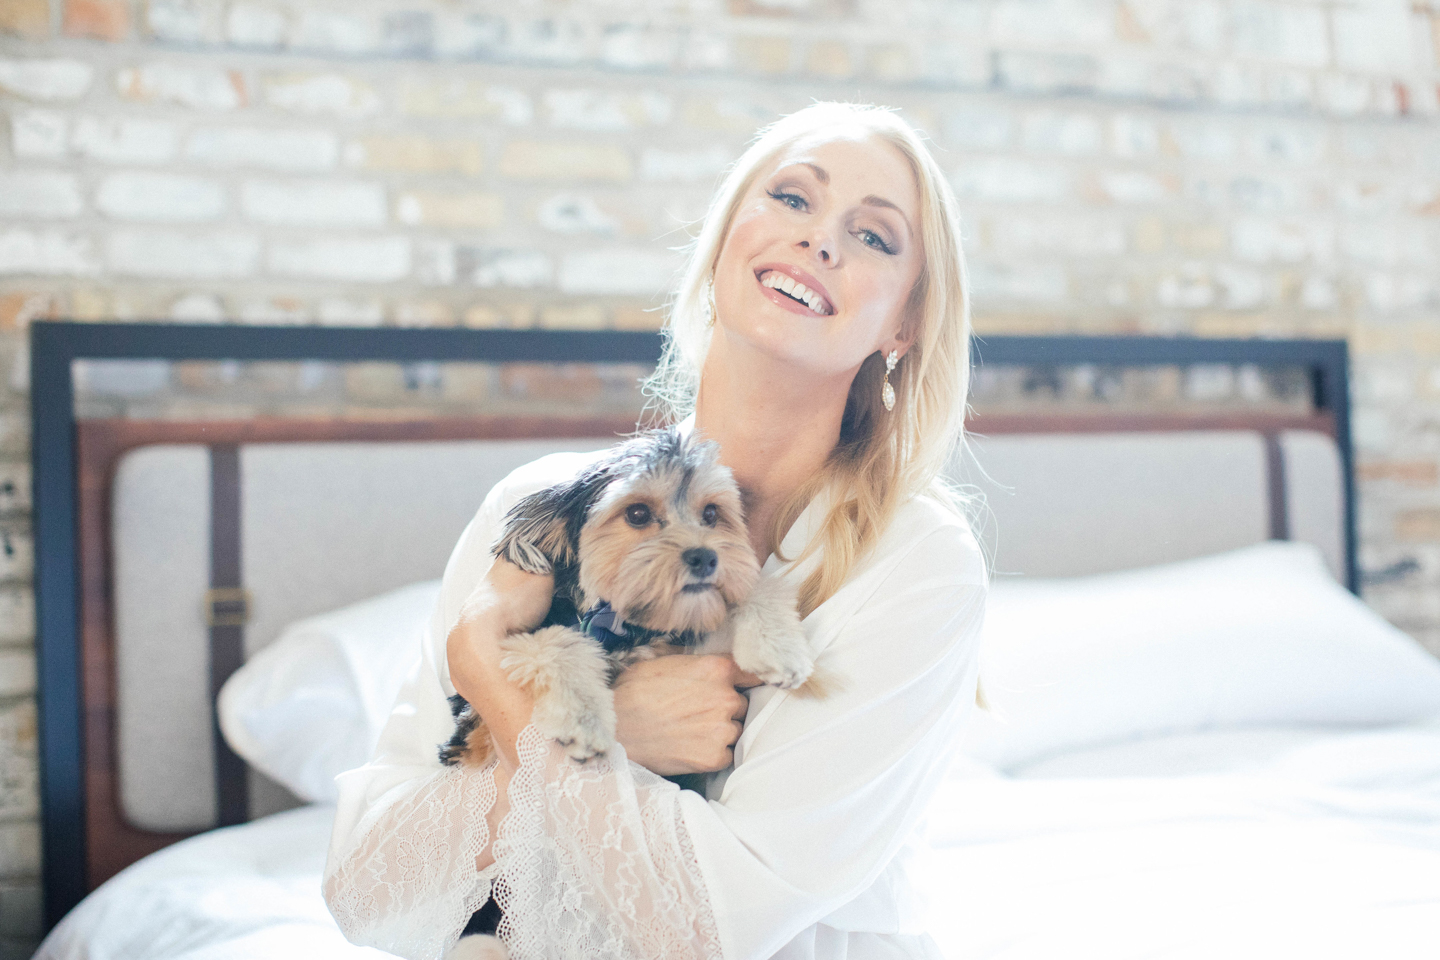 Hewing Hotel wedding photography